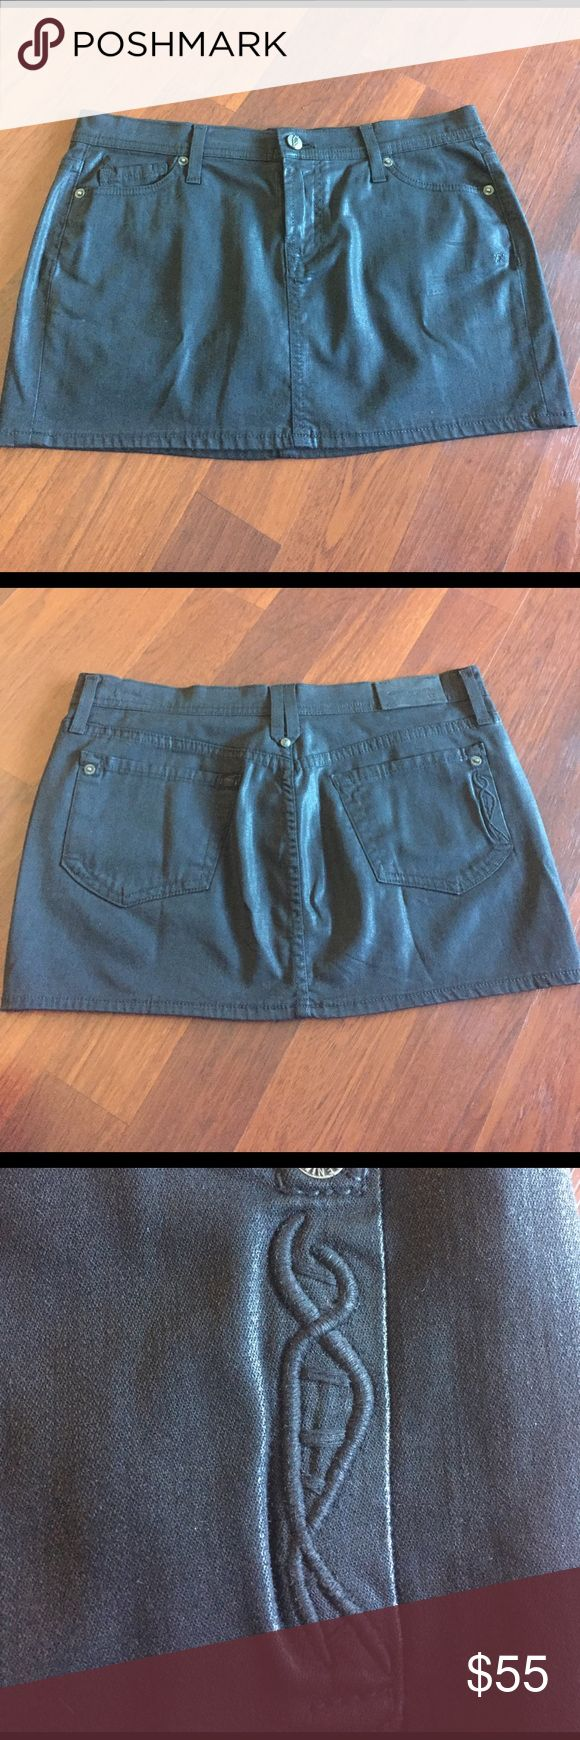 "NWOT Genetic Denim Black waxed coated leather mini NWOT Genetic Denim Wax coated Black leather mini skirt. 27"" waist. 12"" length. 98% cotton 2% poly. Has a wax coated feel. Super hot. Genetic Denim Skirts Mini"